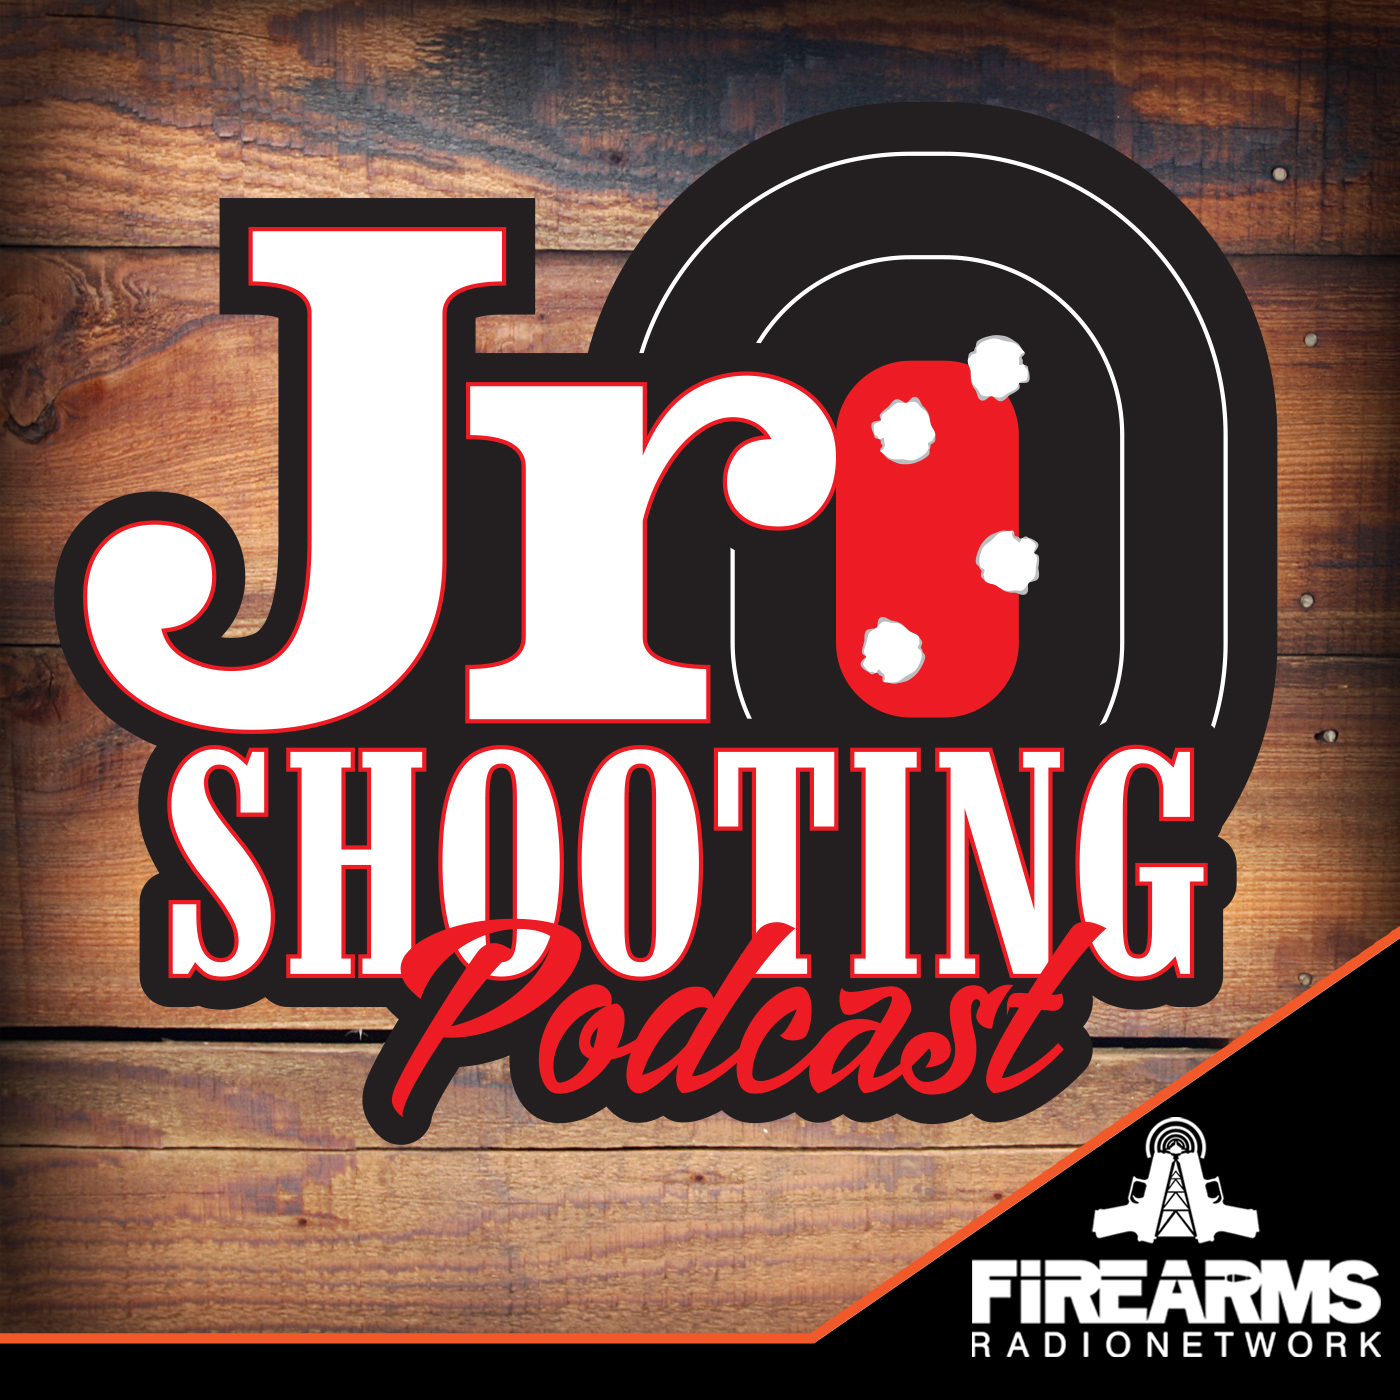 Contact the Jr Shooting Podcast